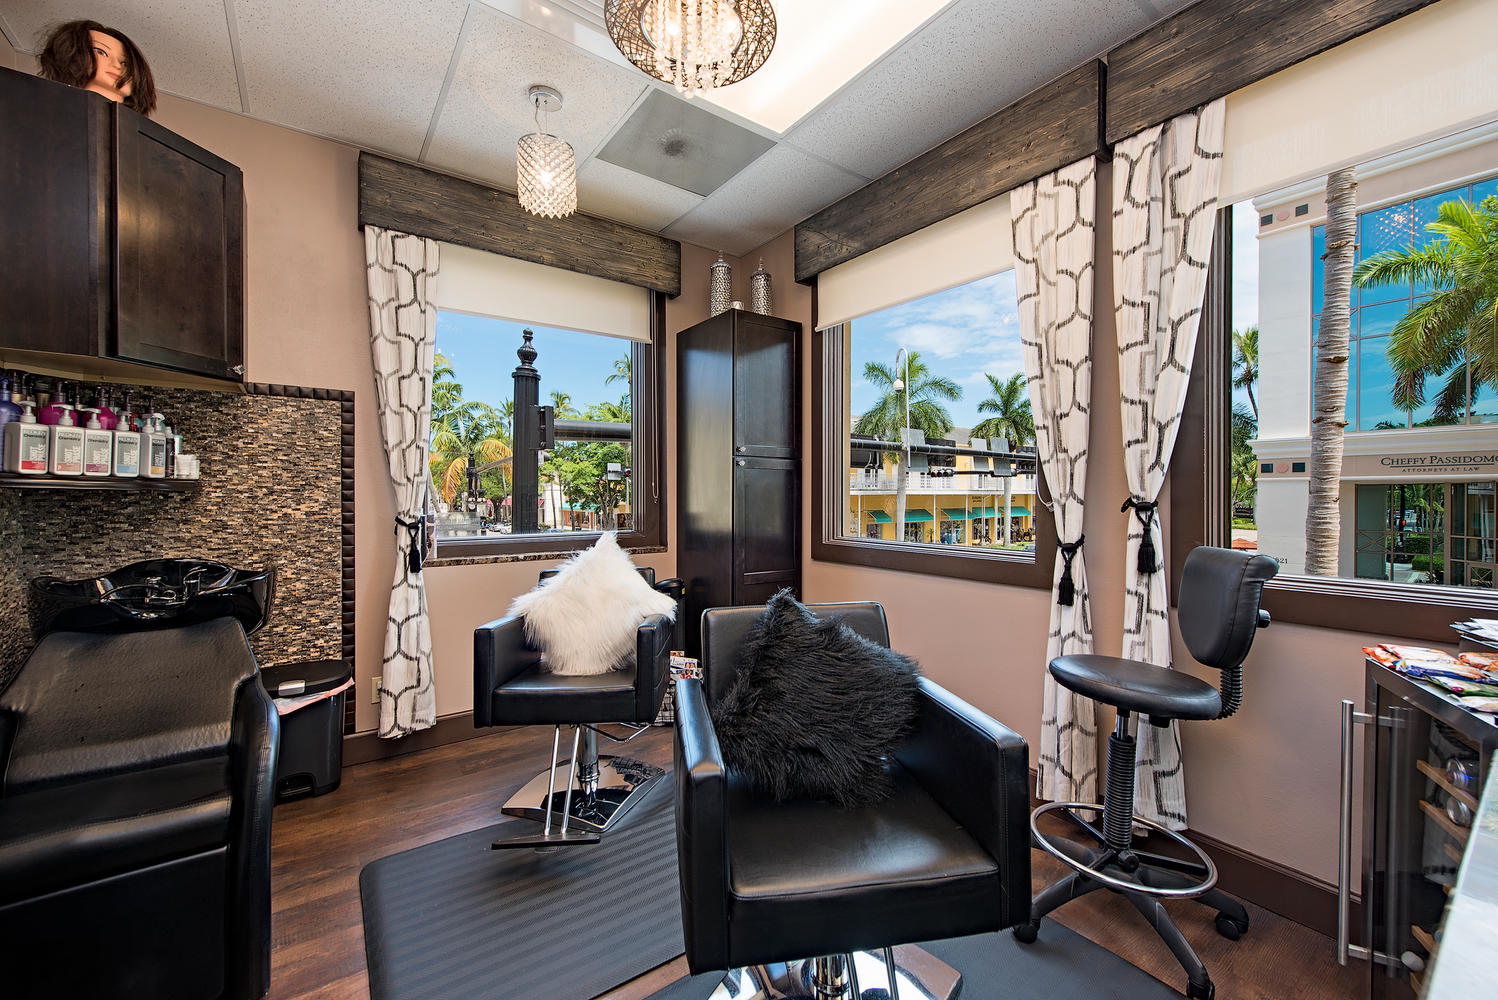 Pura vida medical spa salons by jc 5th avenue south for 5th avenue salon